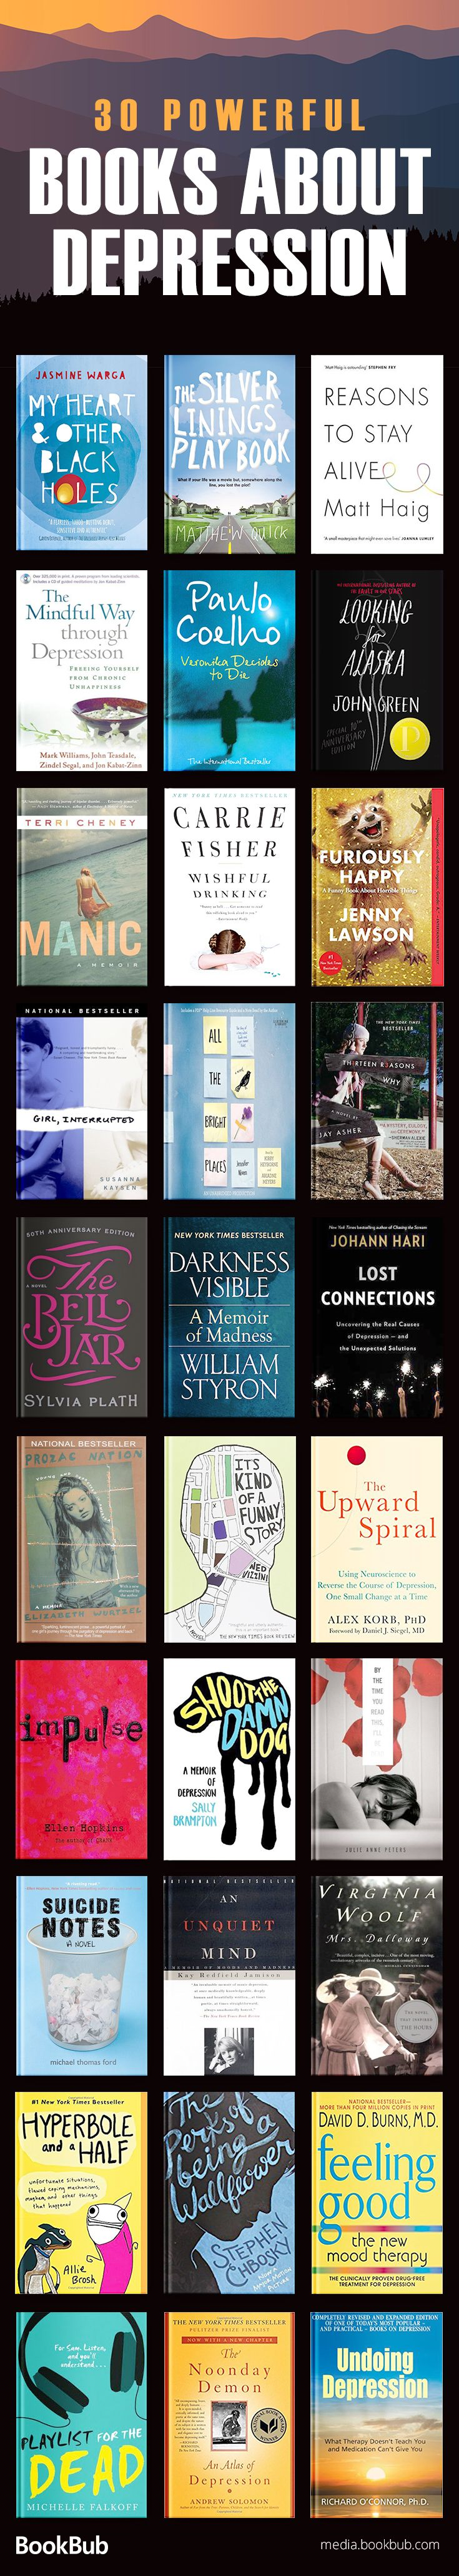 A reading list of books about depression and mental illness that is worth reading. Including great book recommendations for women, men, and young adults.